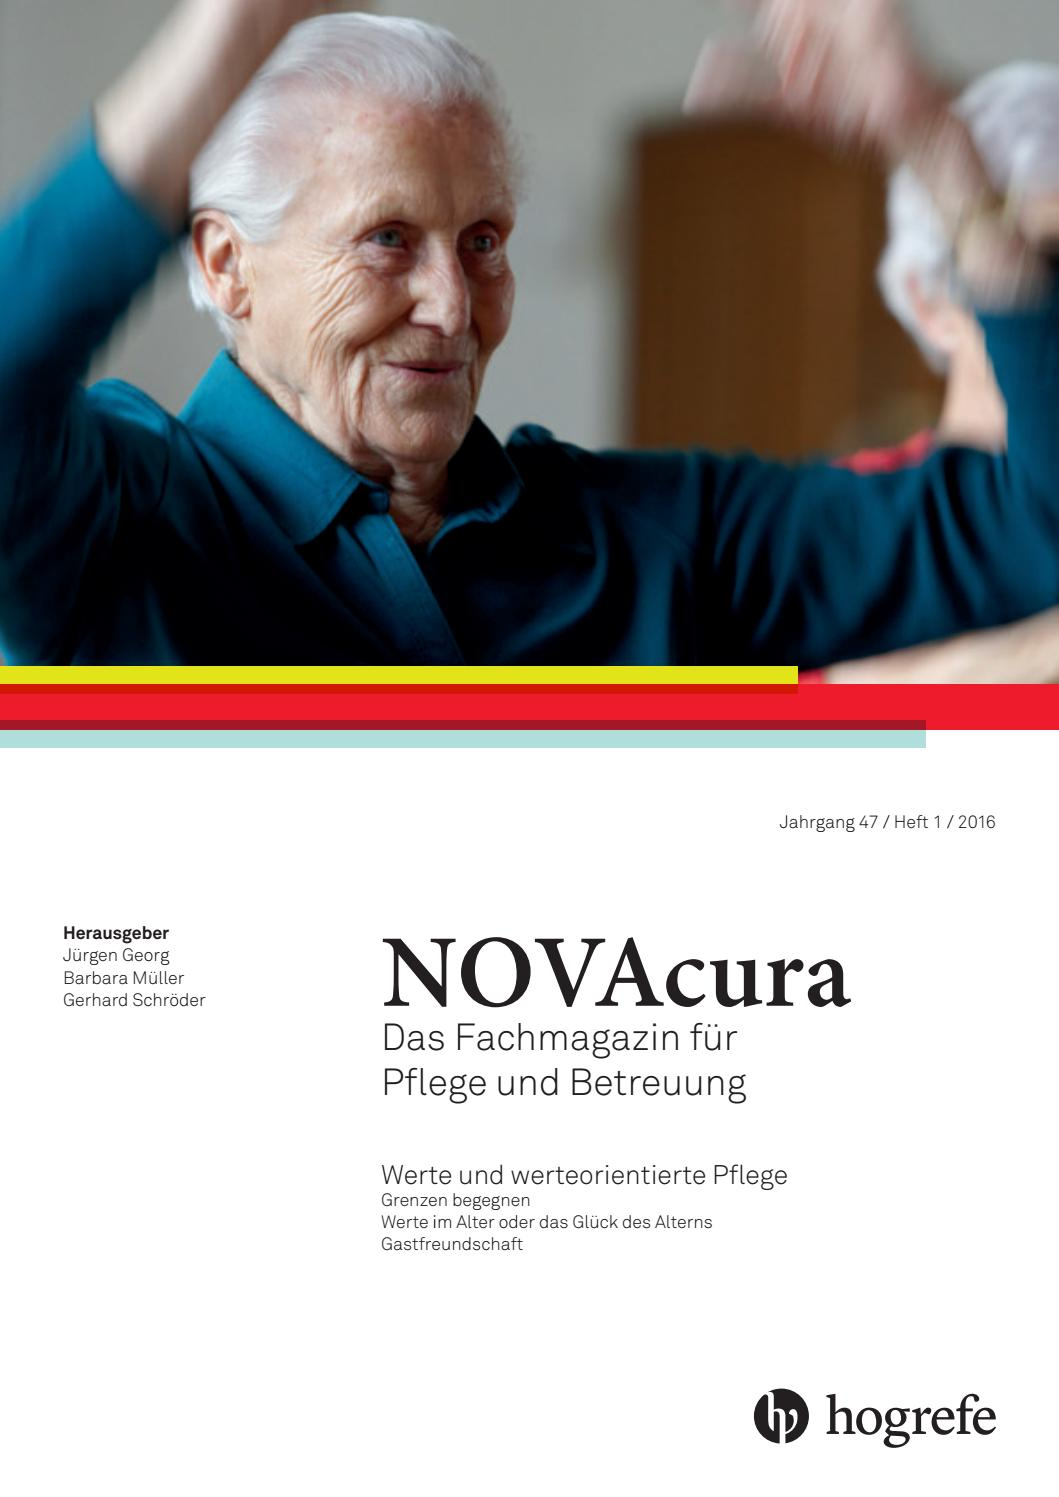 Noc 2016 47 issue 1 by Hogrefe - issuu